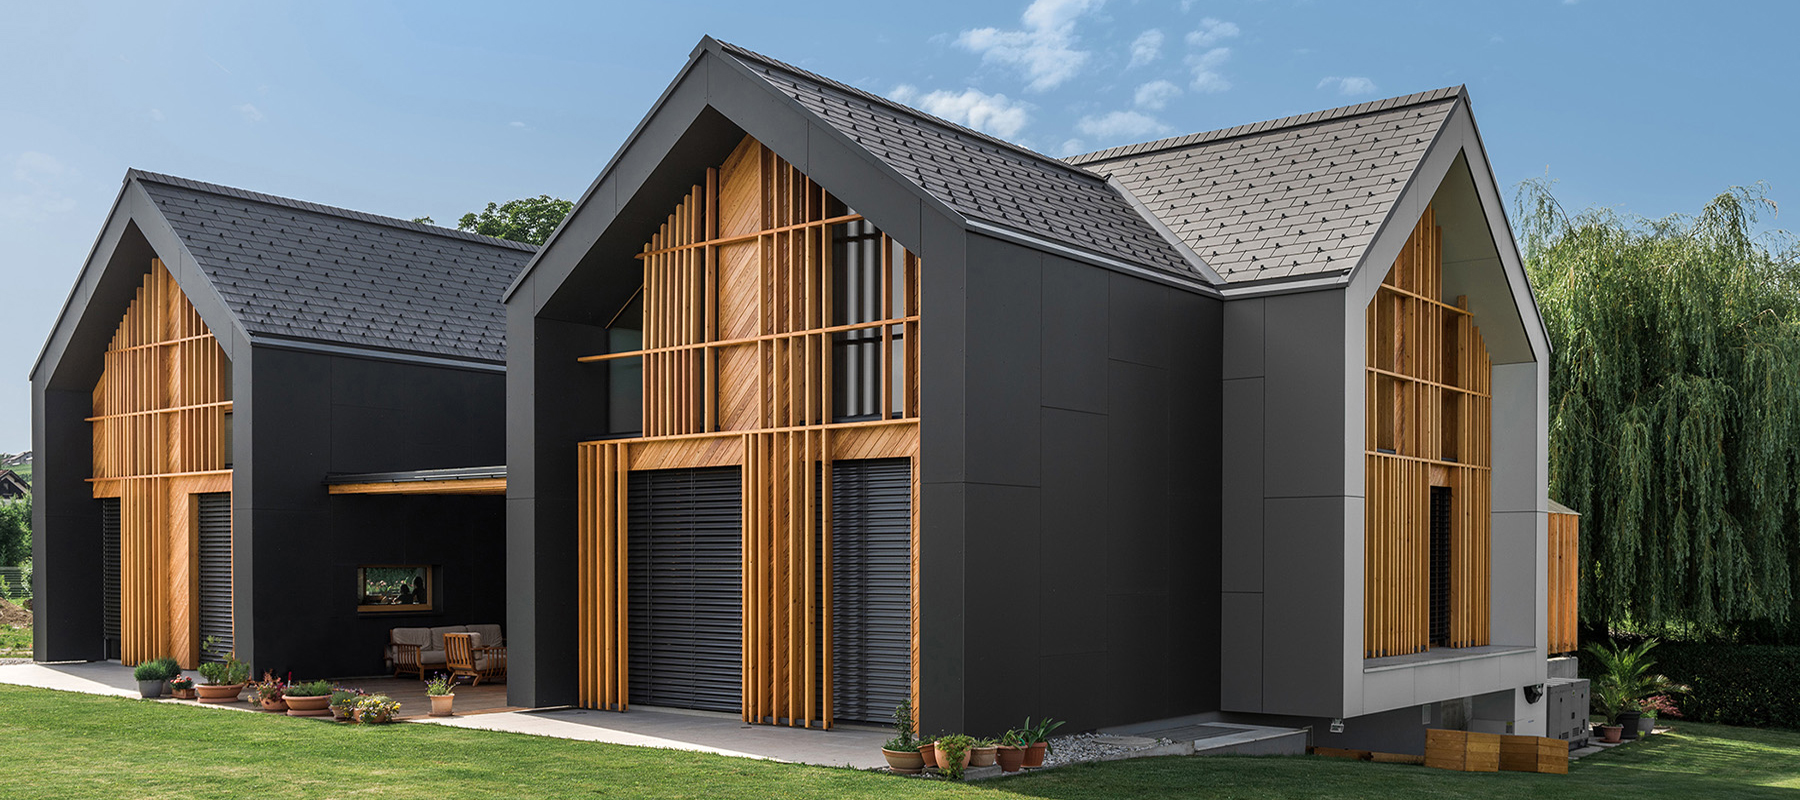 All black house design of three gabled volumes digsdigs for Villa architecture design plans